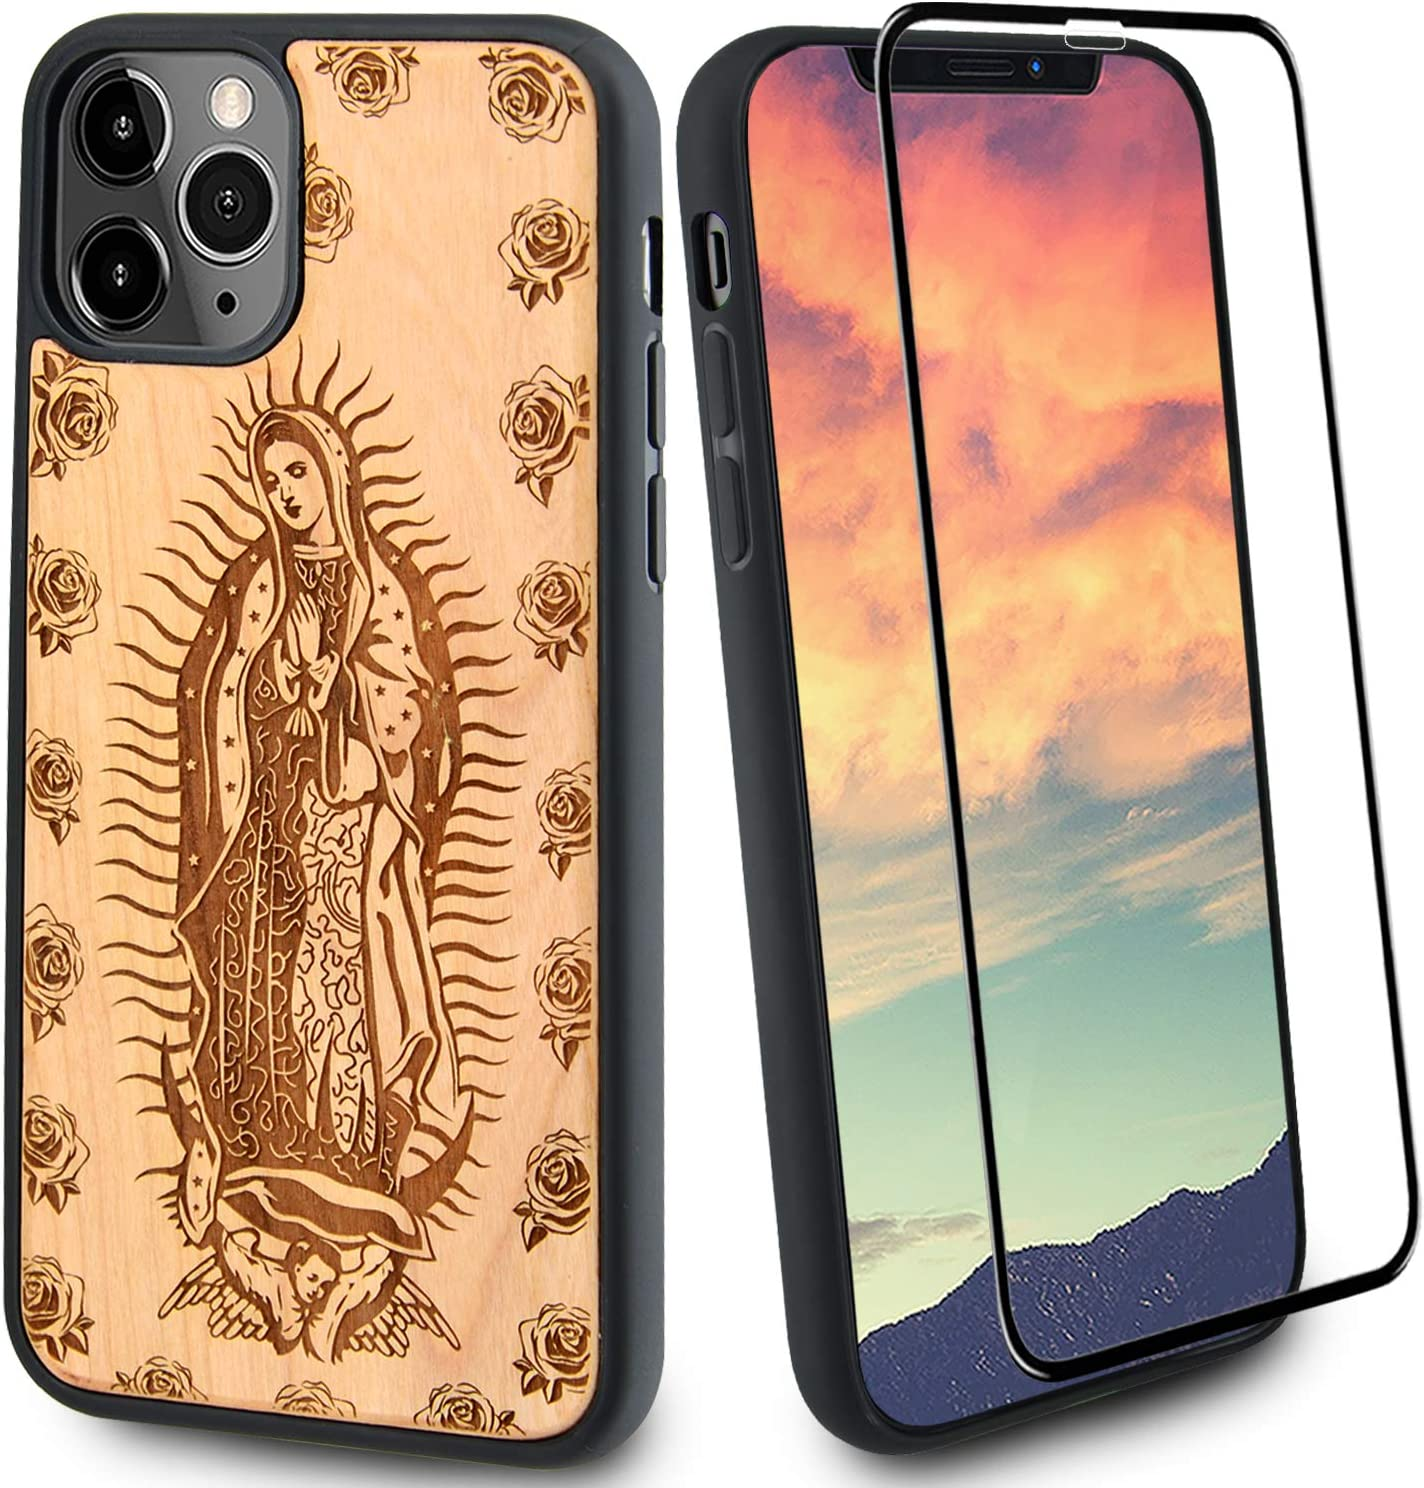 Gift by Ange Our Lady Guadalupe Wood Phone Case Compatible with iPhone 11 Includes Strong 9H Glass Screen Protector, Virgin Mary Engraved in USA, Wireless Charging Compatible (6.1 inches)